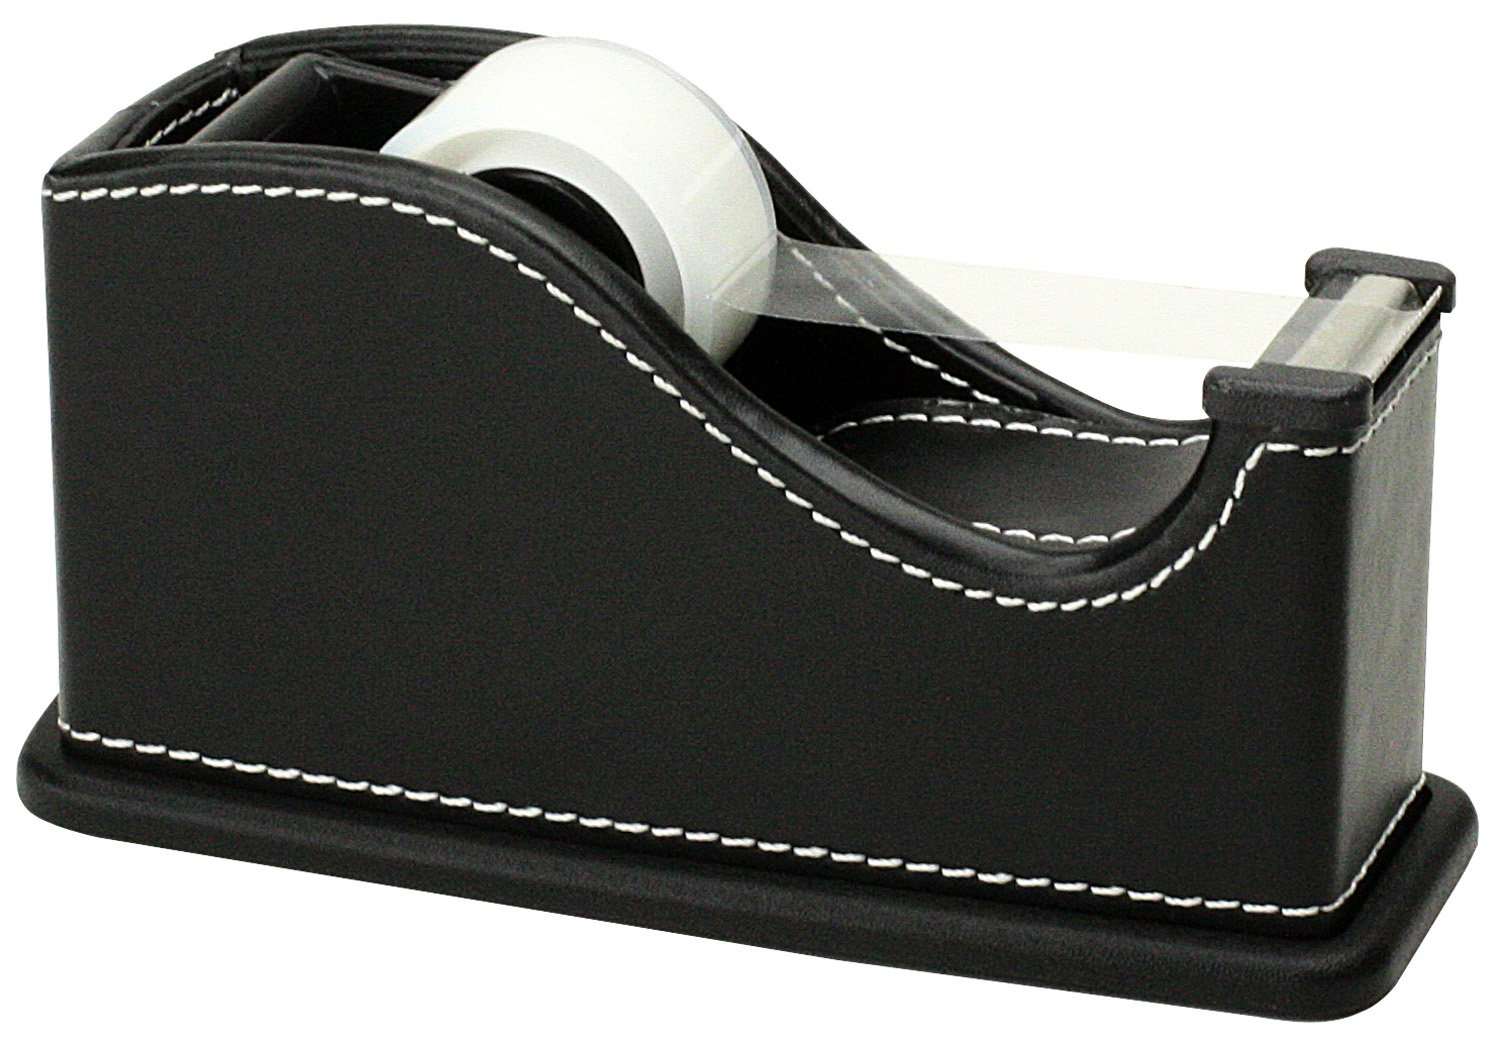 Hipce Tape Dispenser (Black) by HipCE (Image #3)